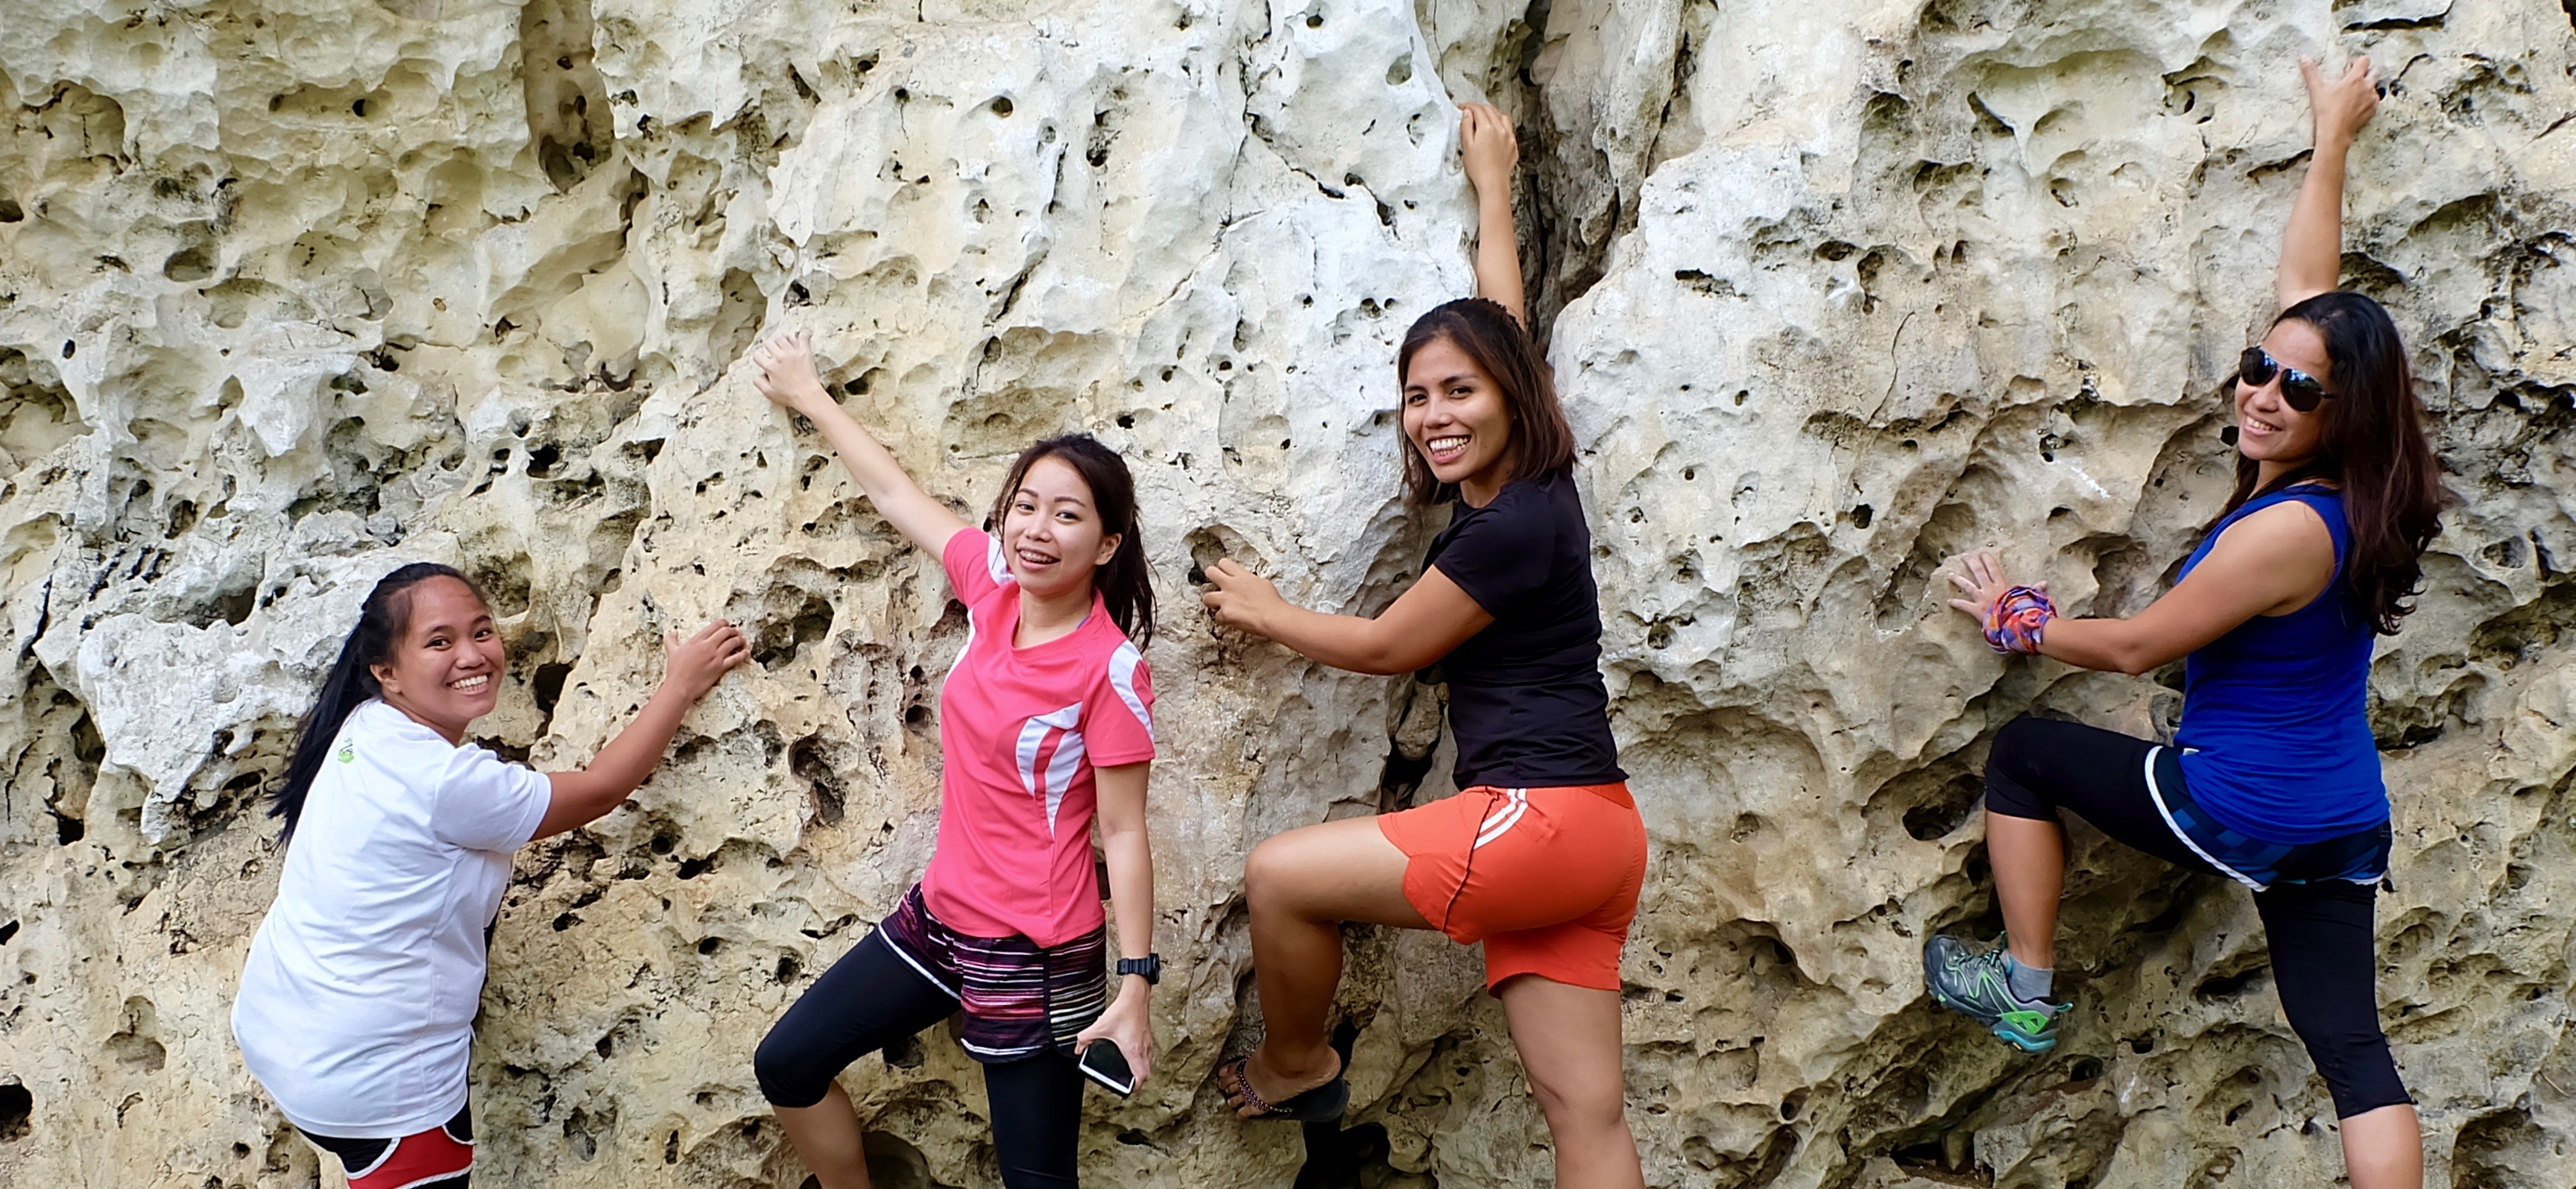 Rock climbing newbies